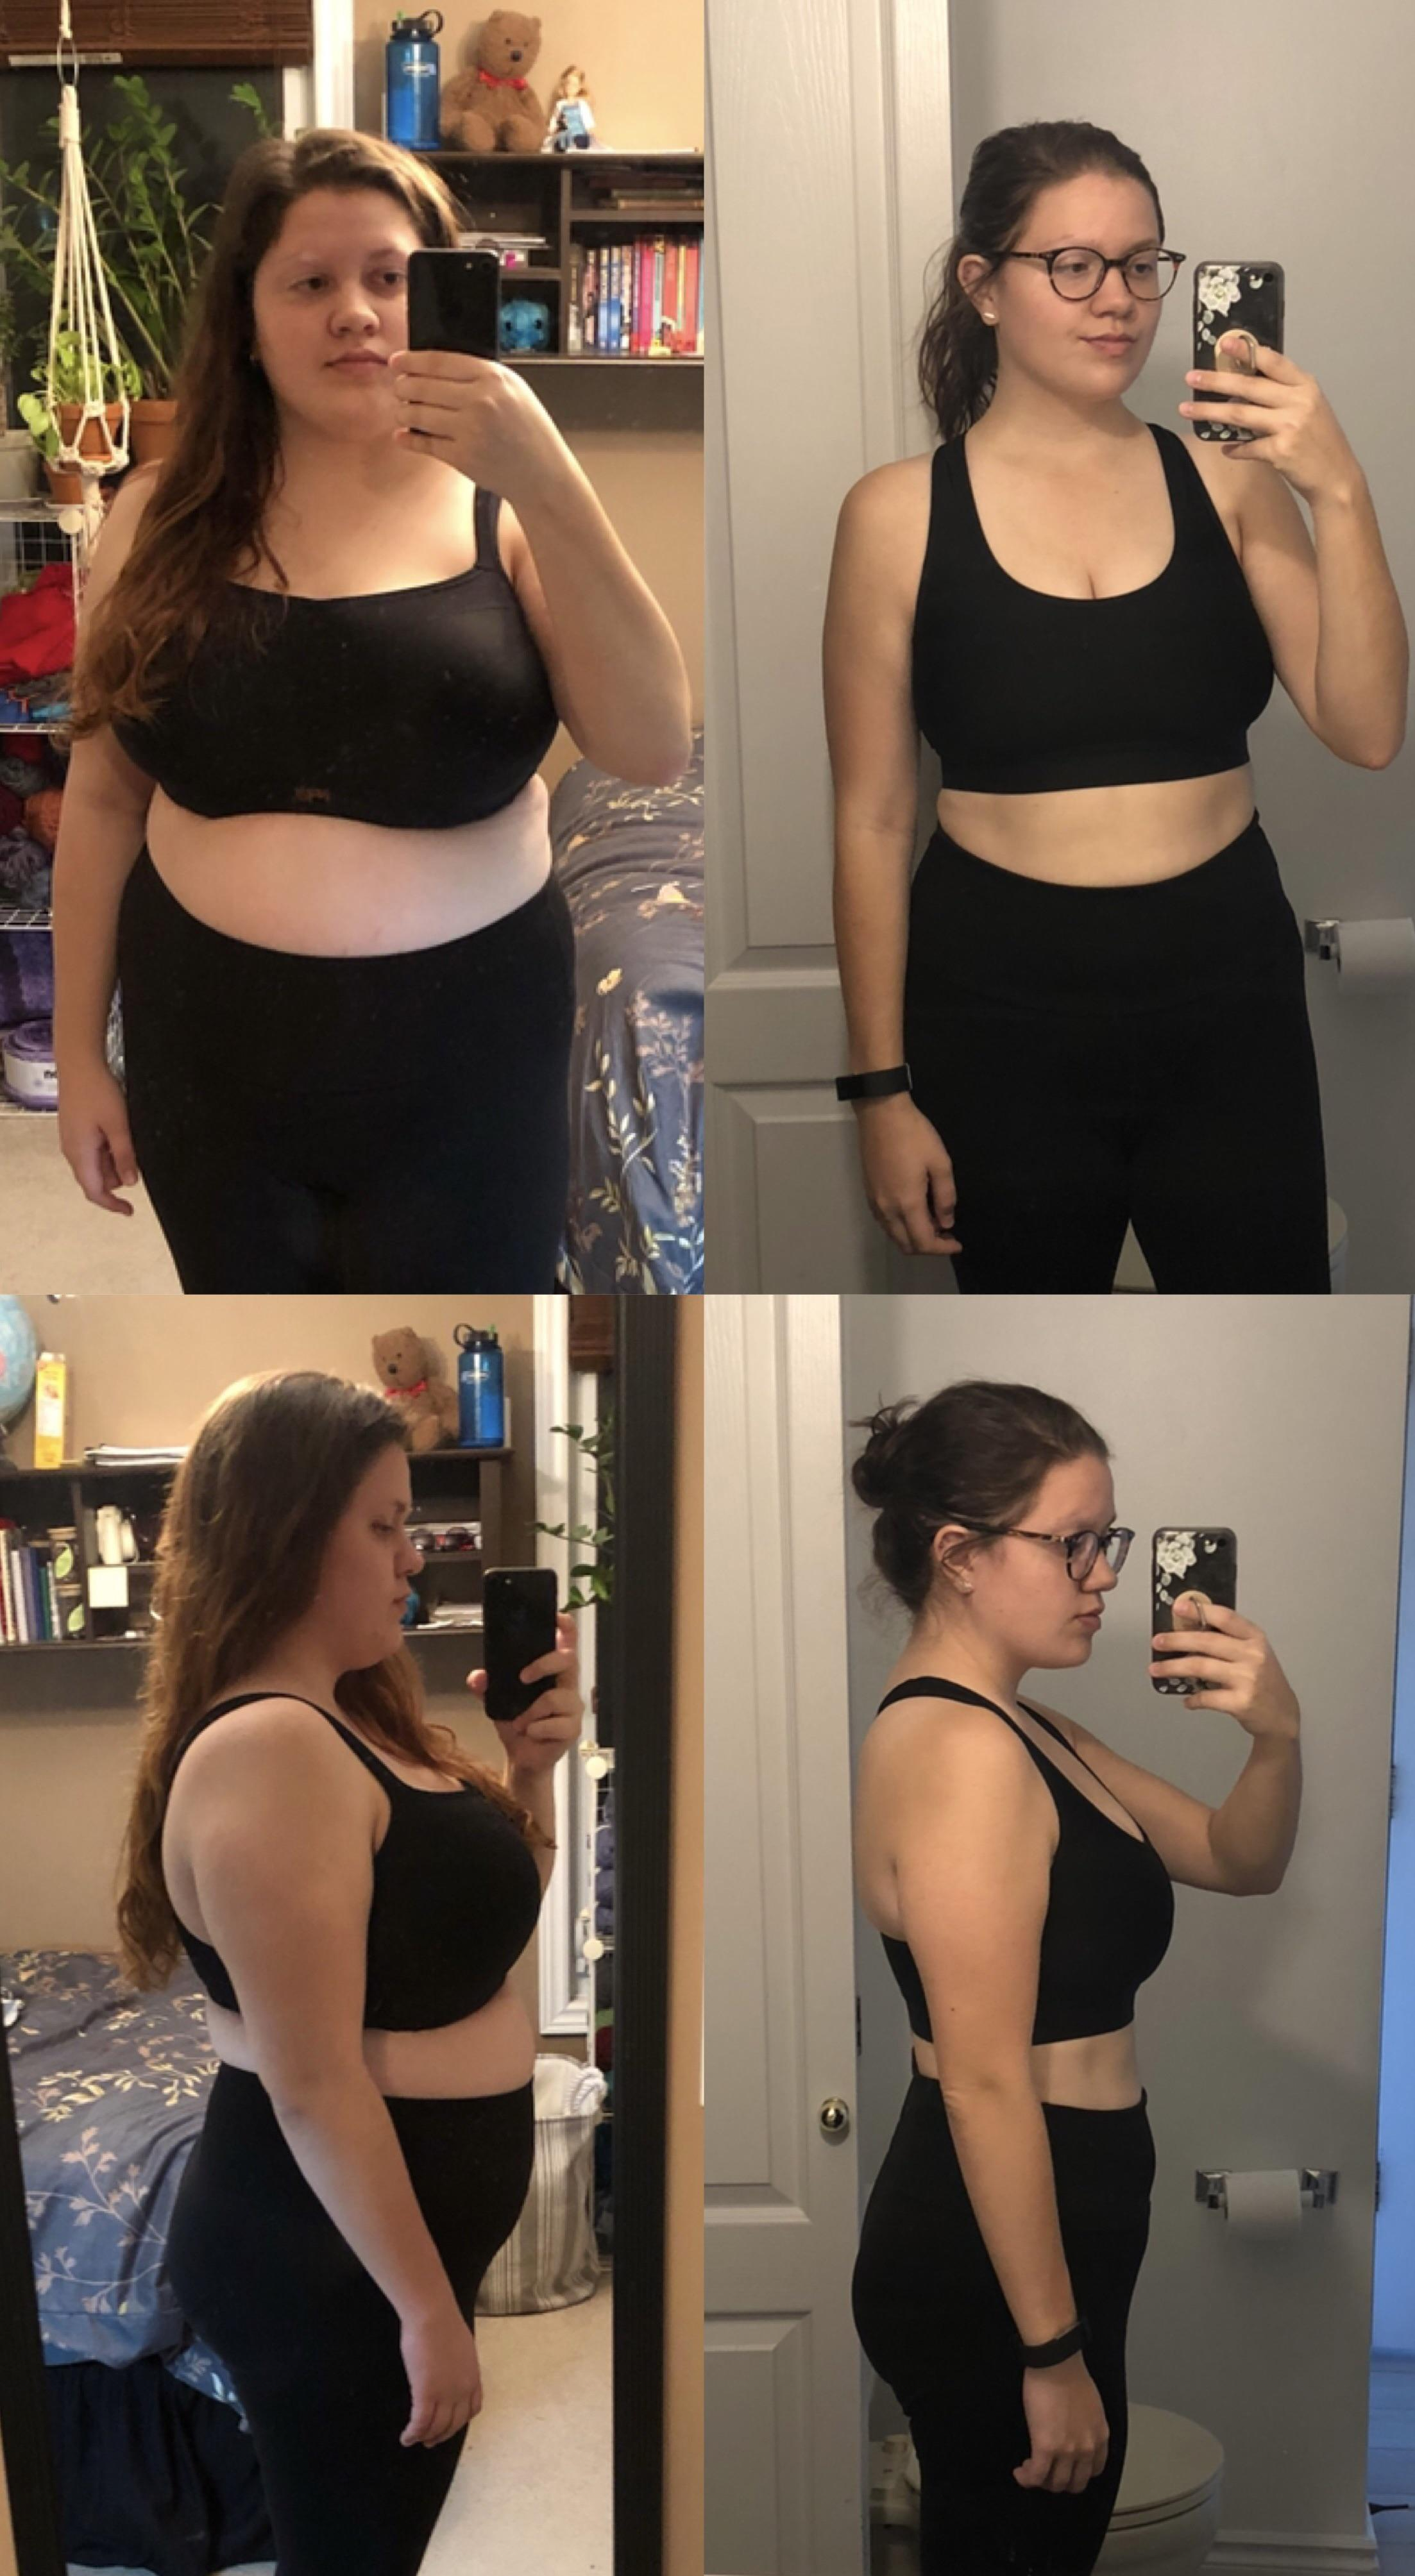 5 foot 5 Female 66 lbs Fat Loss Before and After 216 lbs to 150 lbs